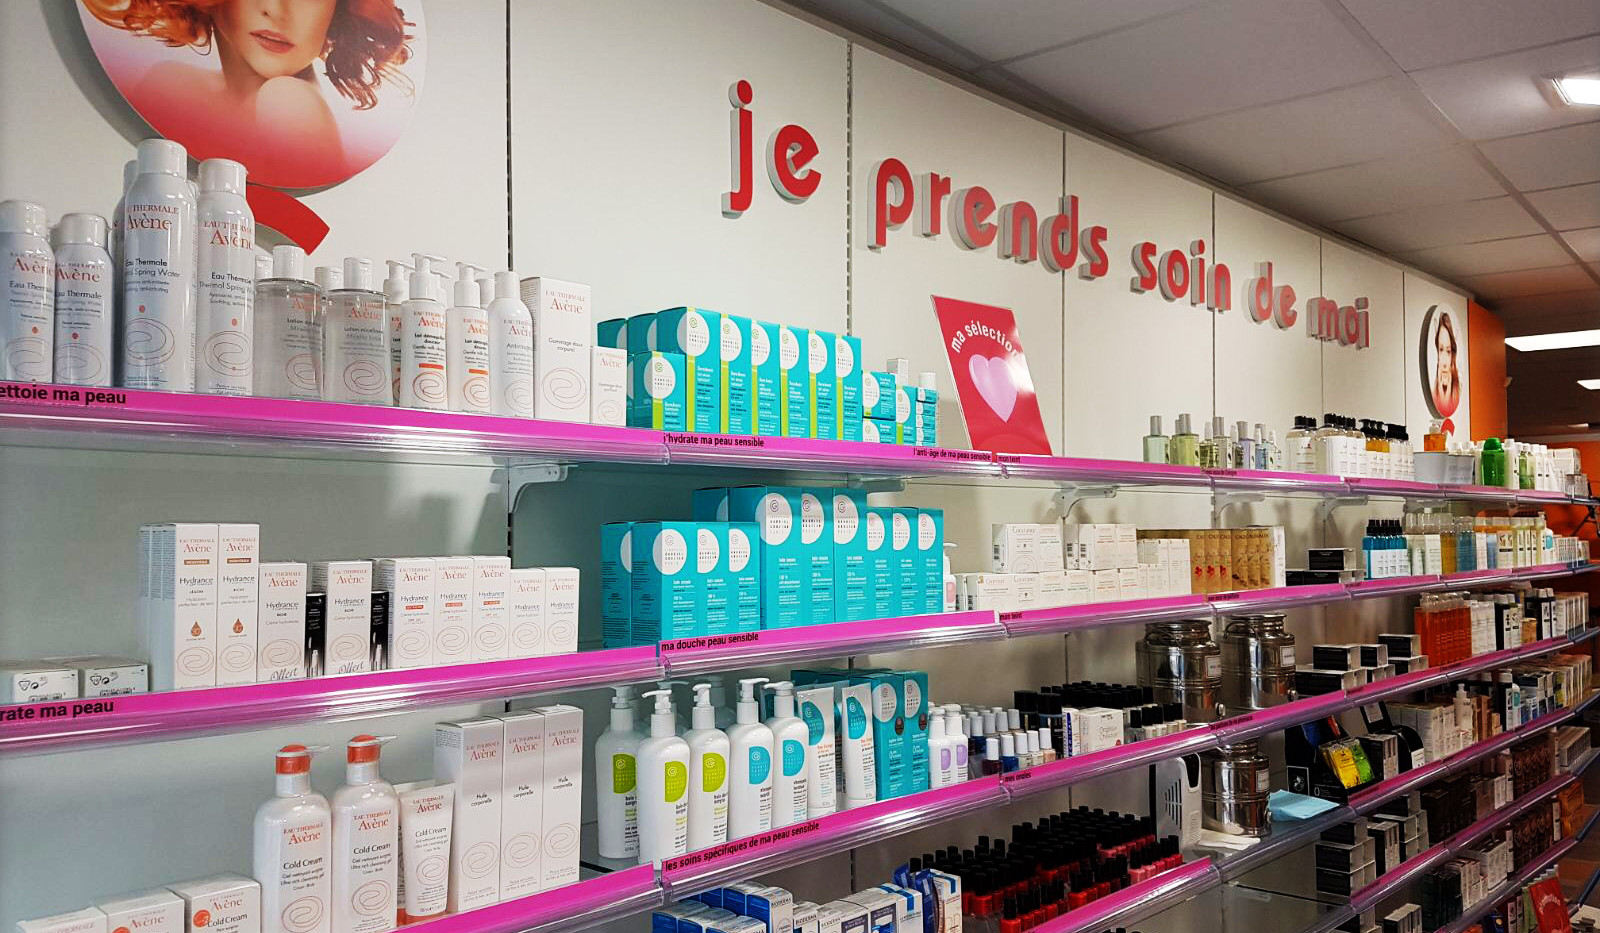 pharmacie_cassagnol_4.jpg